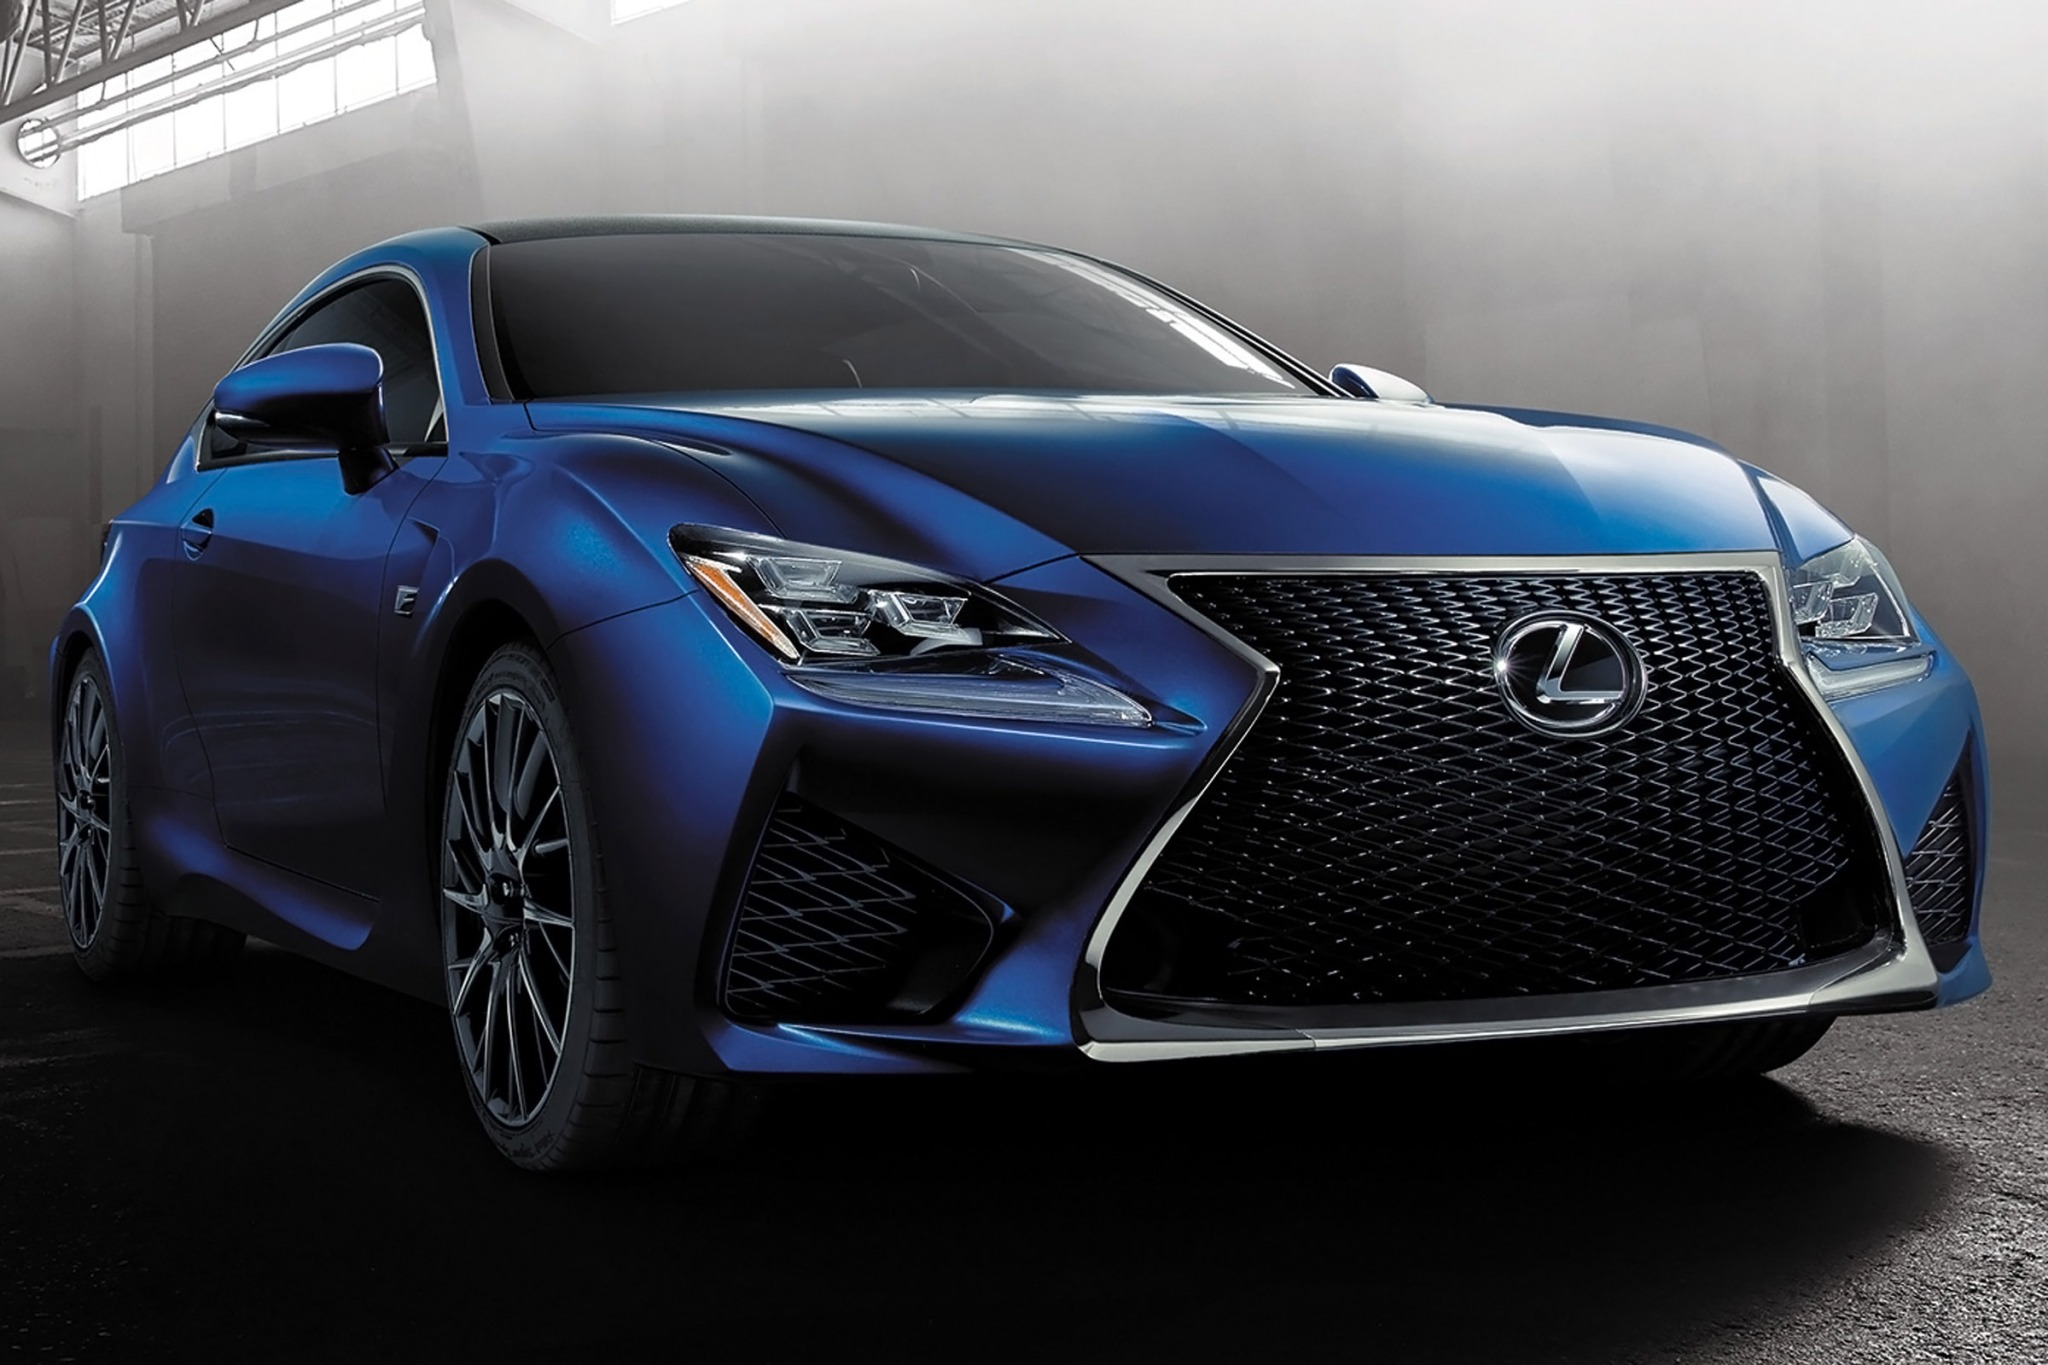 2015 Lexus RC F Coupe Ext exterior #2